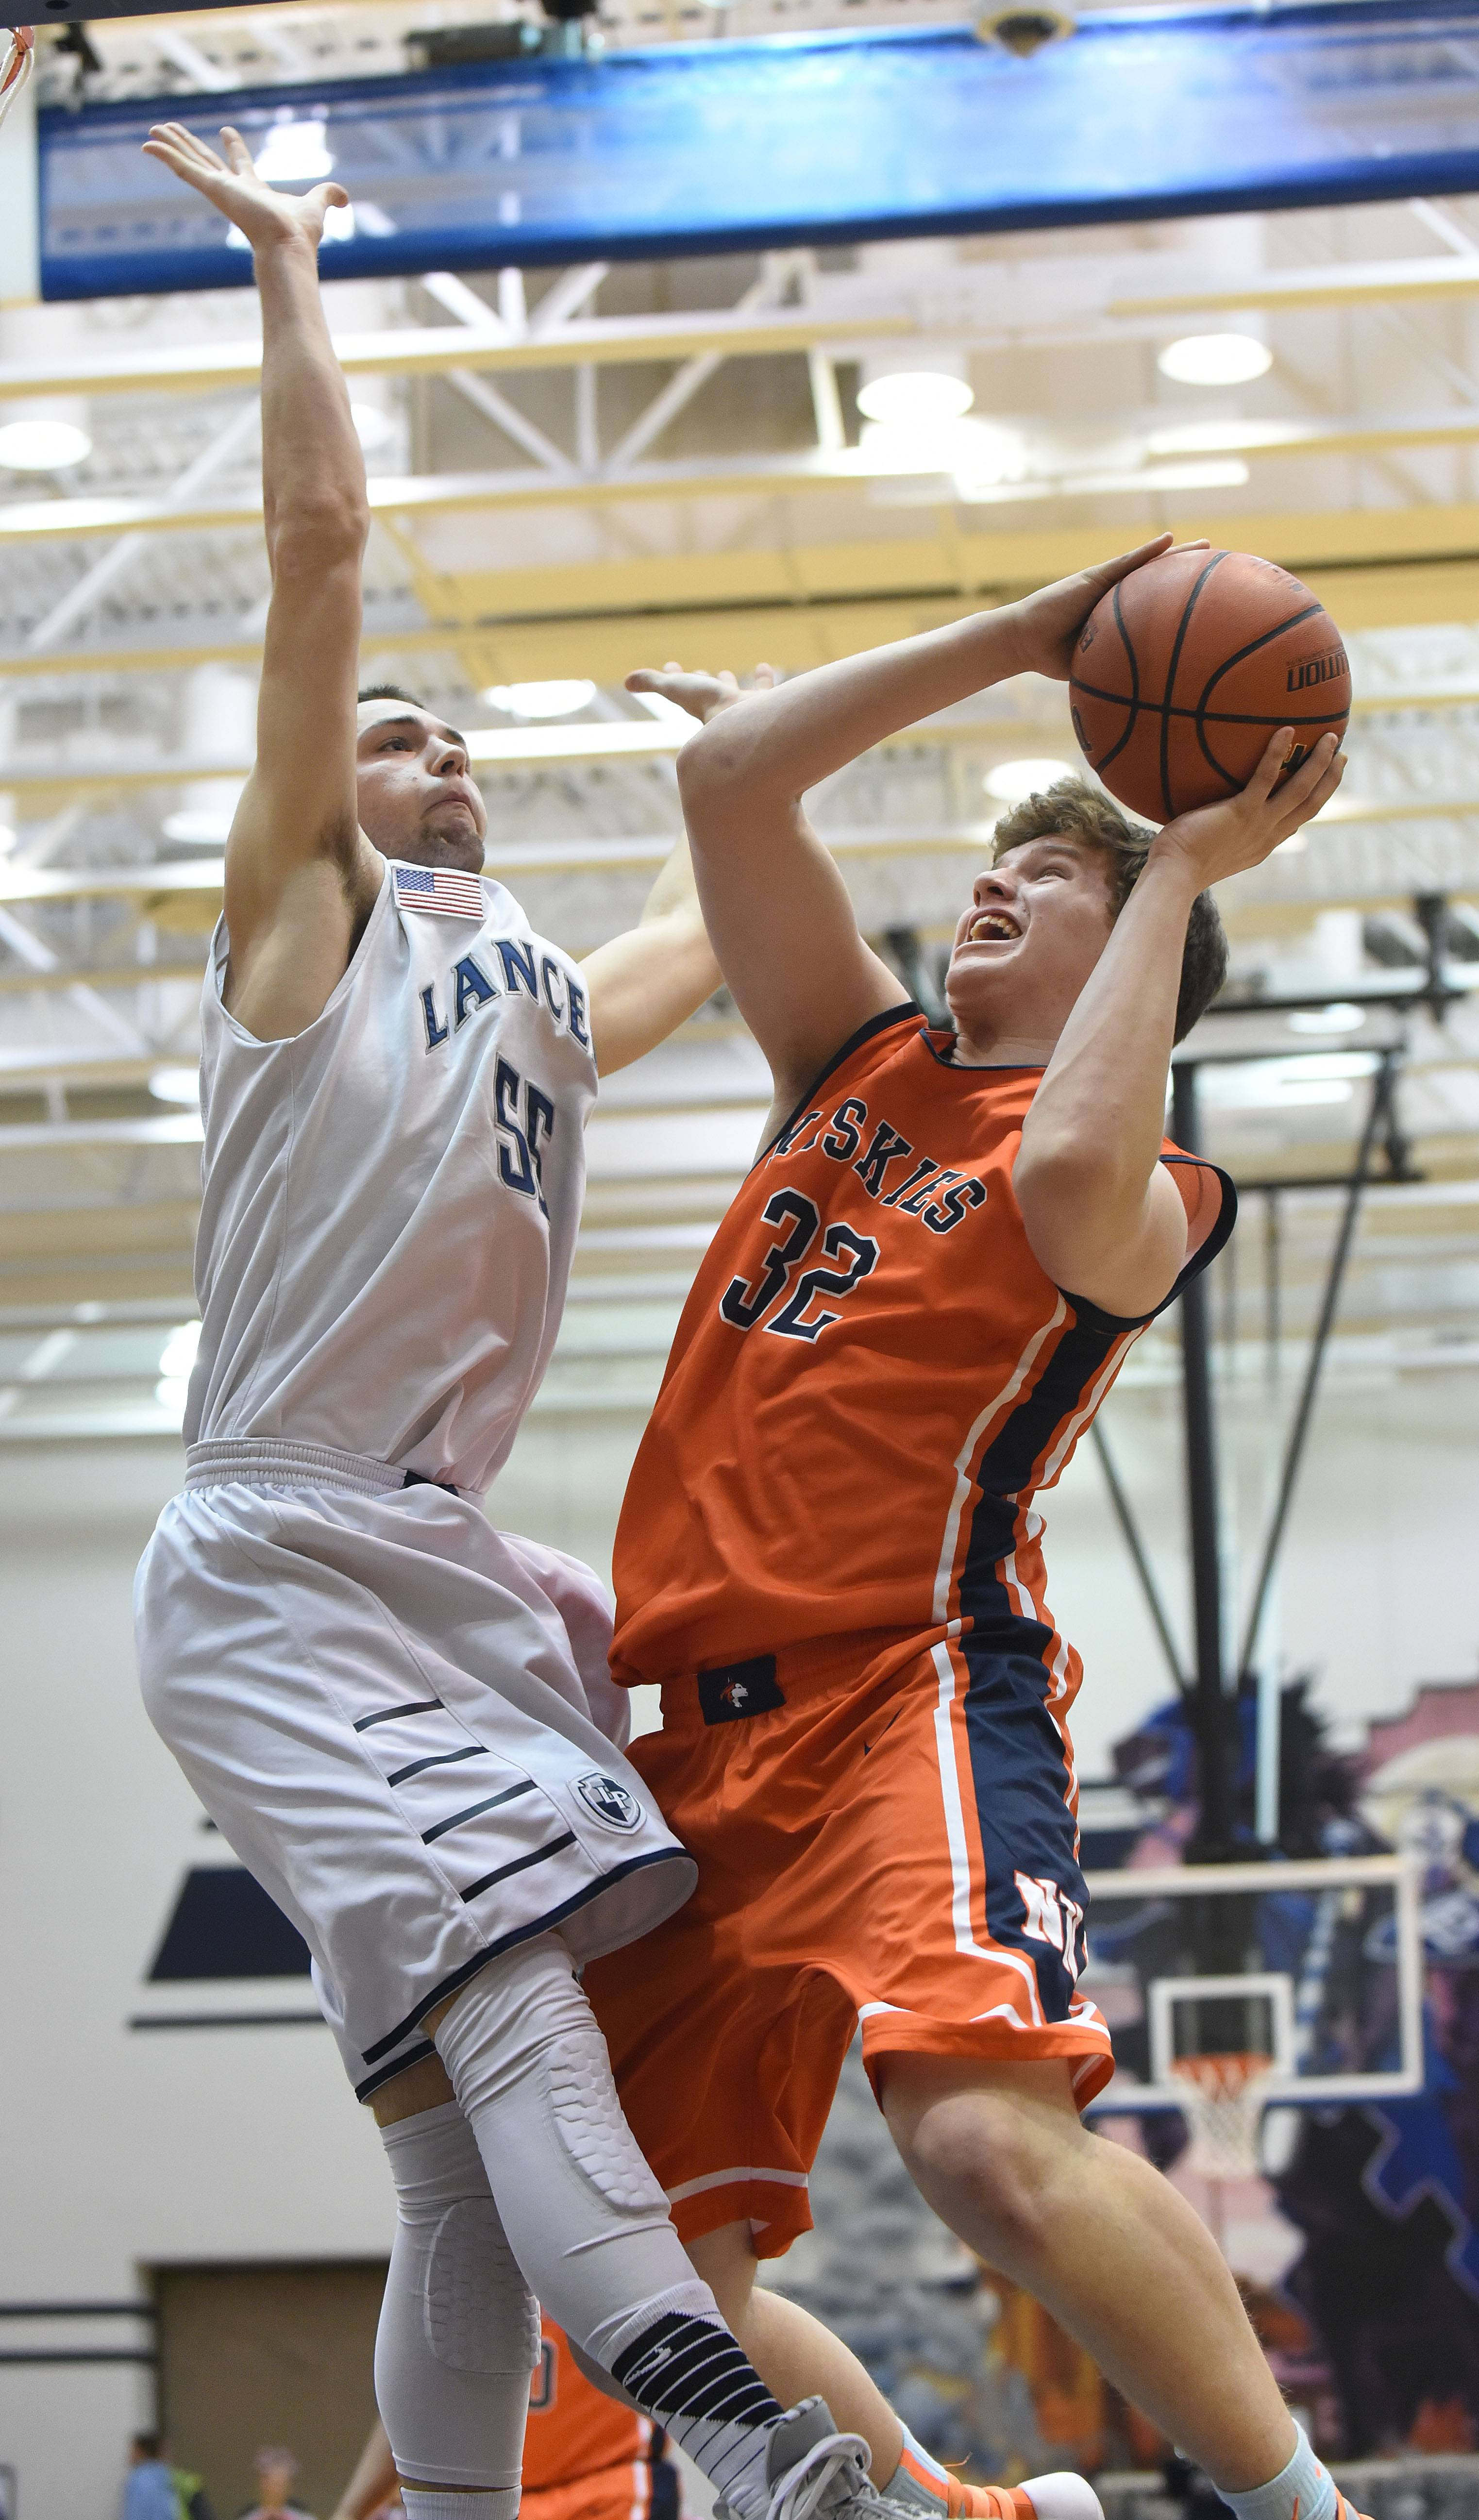 Mitchell Jarosinski of Lake Park attempts to block Chris Johnson of Naperville North.